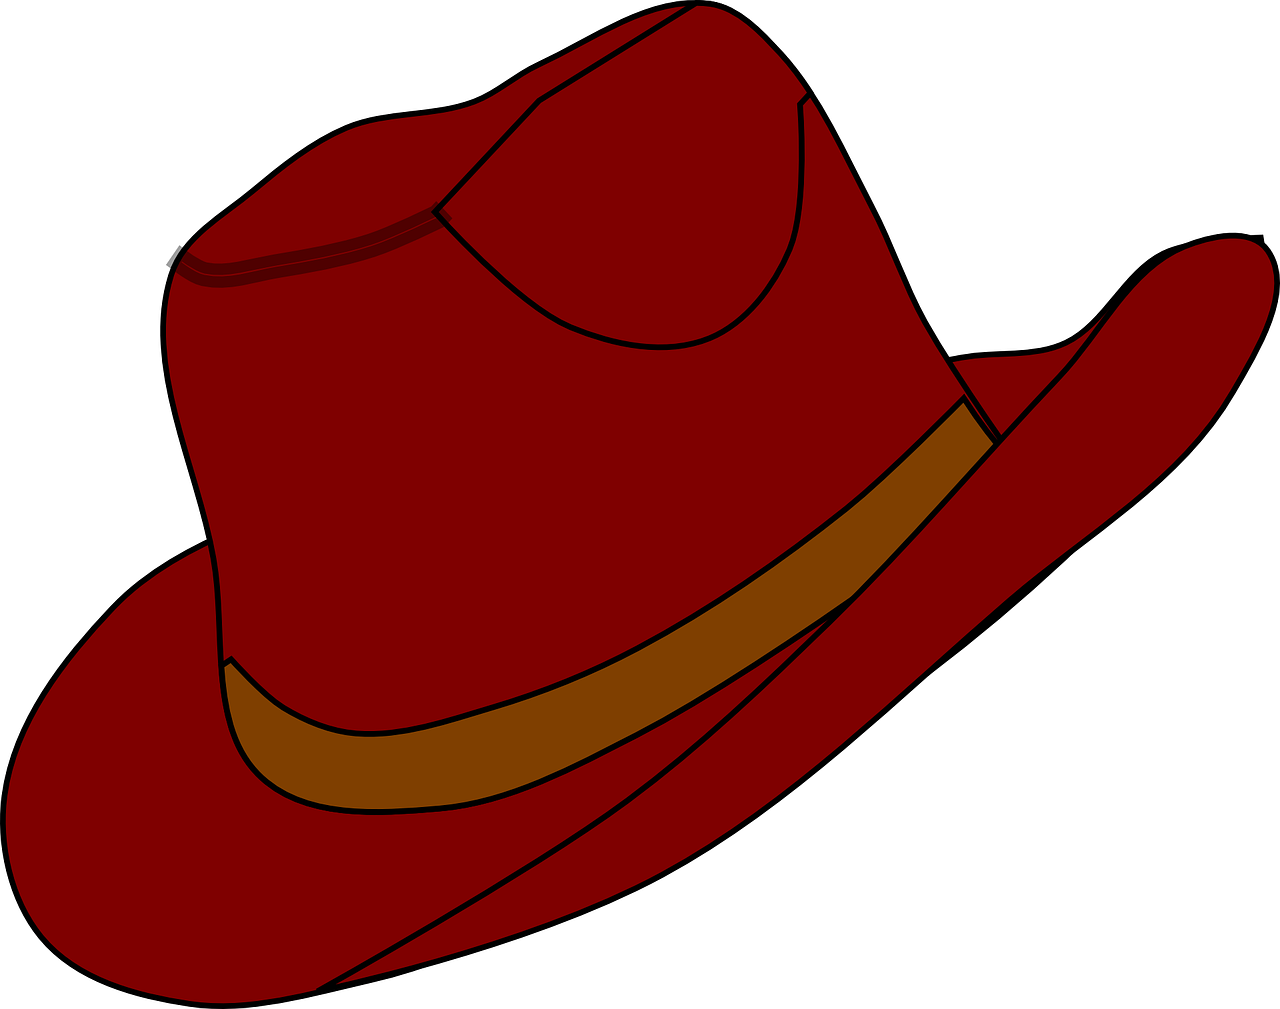 Hat clipart #8, Download drawings